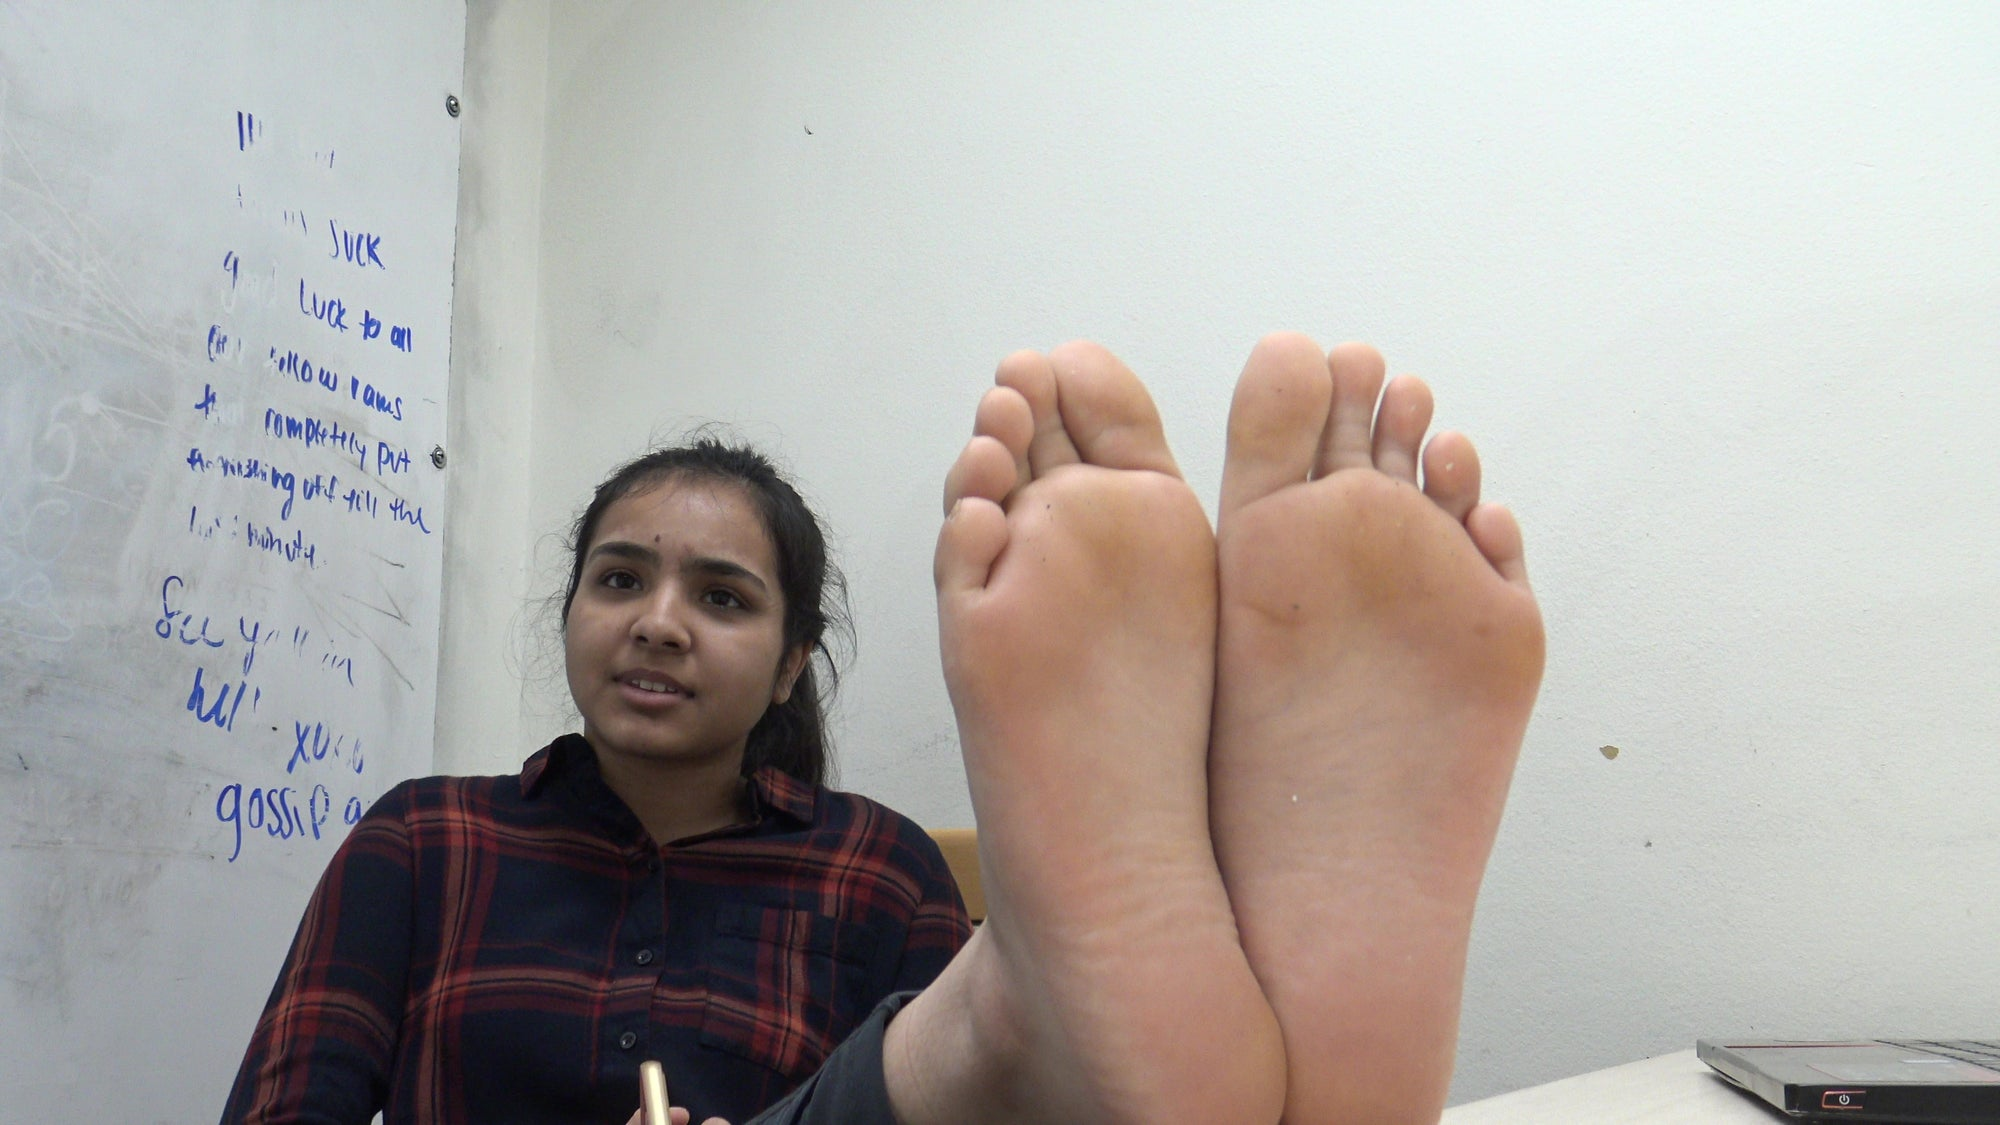 Bangladesh Indian Girl Stinky Feet After Gym Workout Part 1